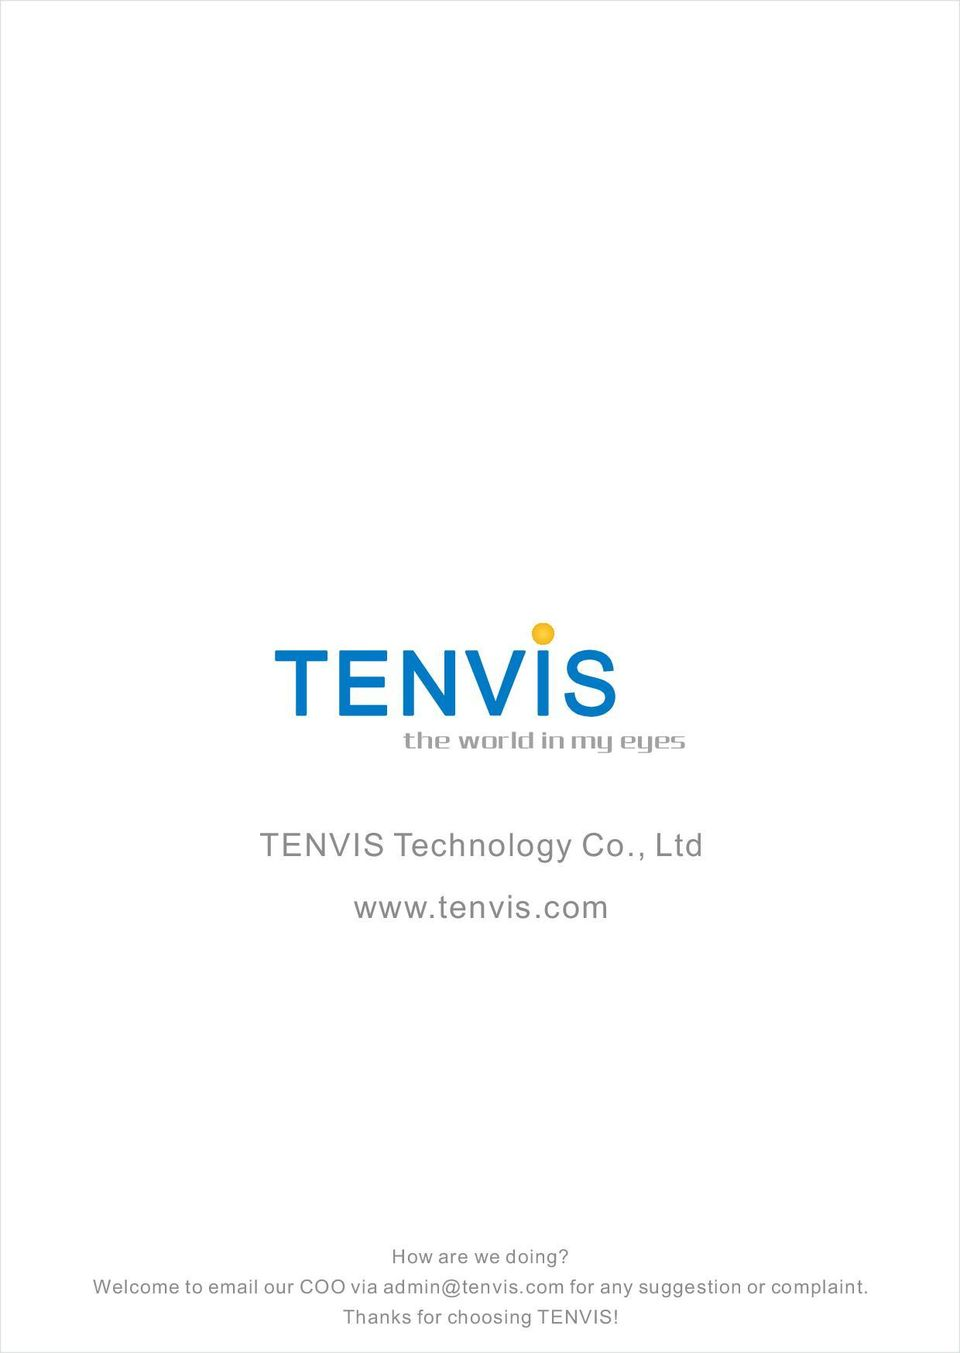 Welcome to email our COO via admin@tenvis.